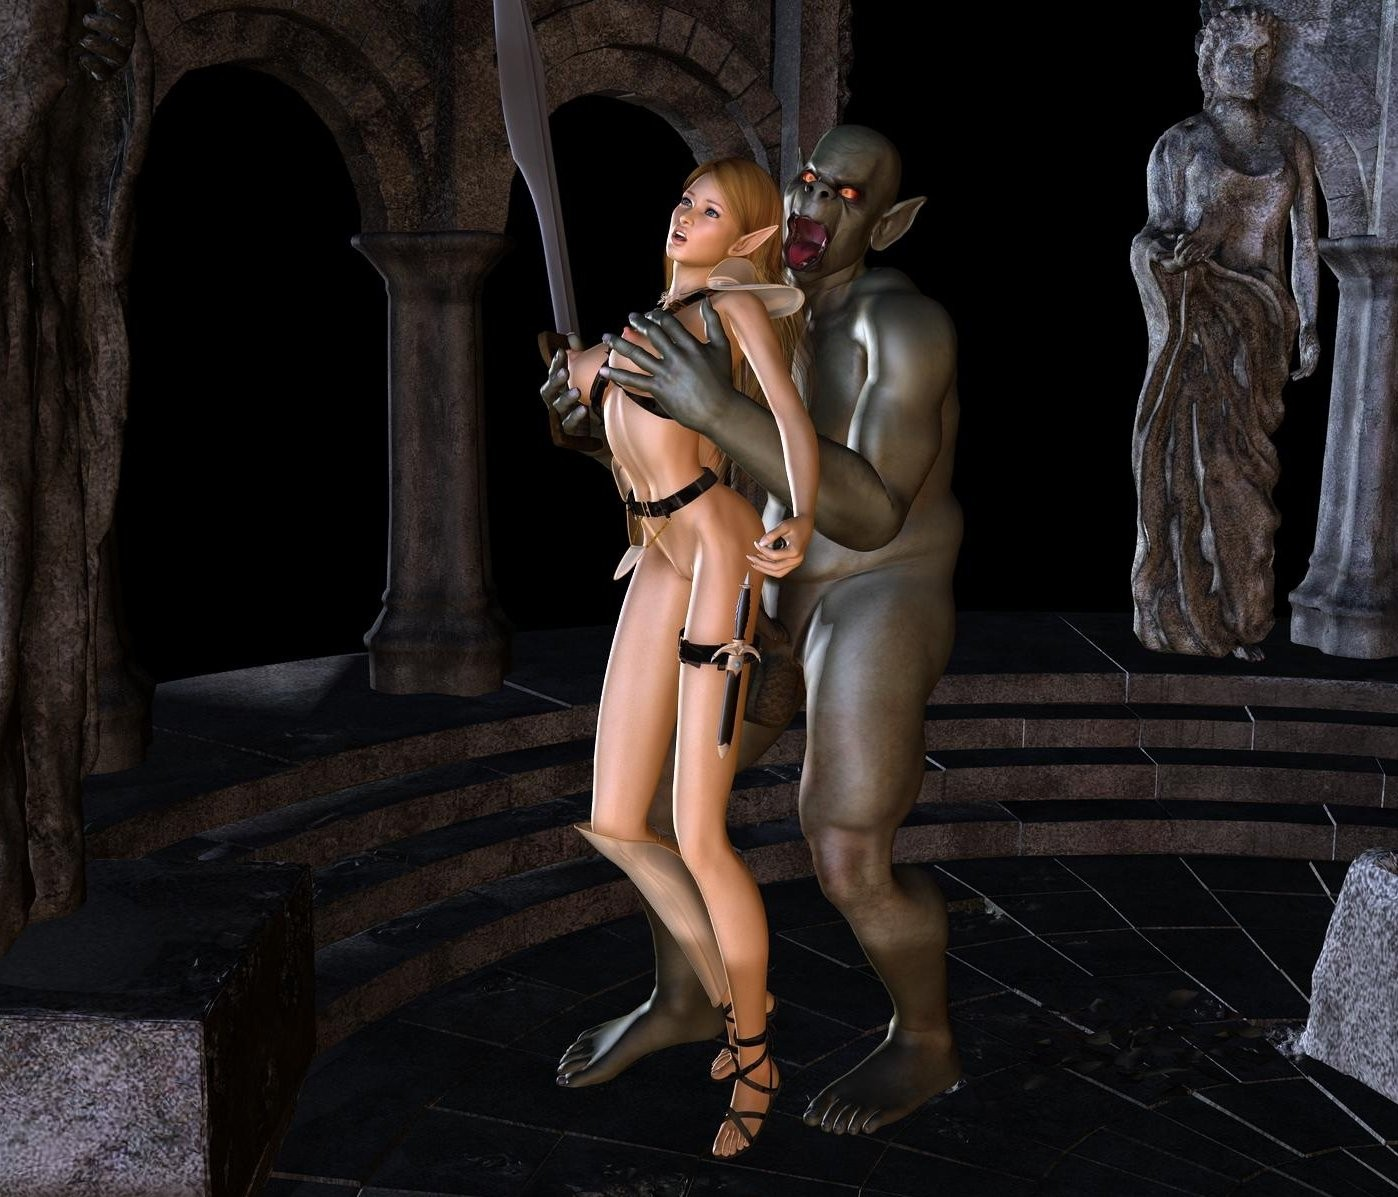 Orcs and elves sex porn sexy image